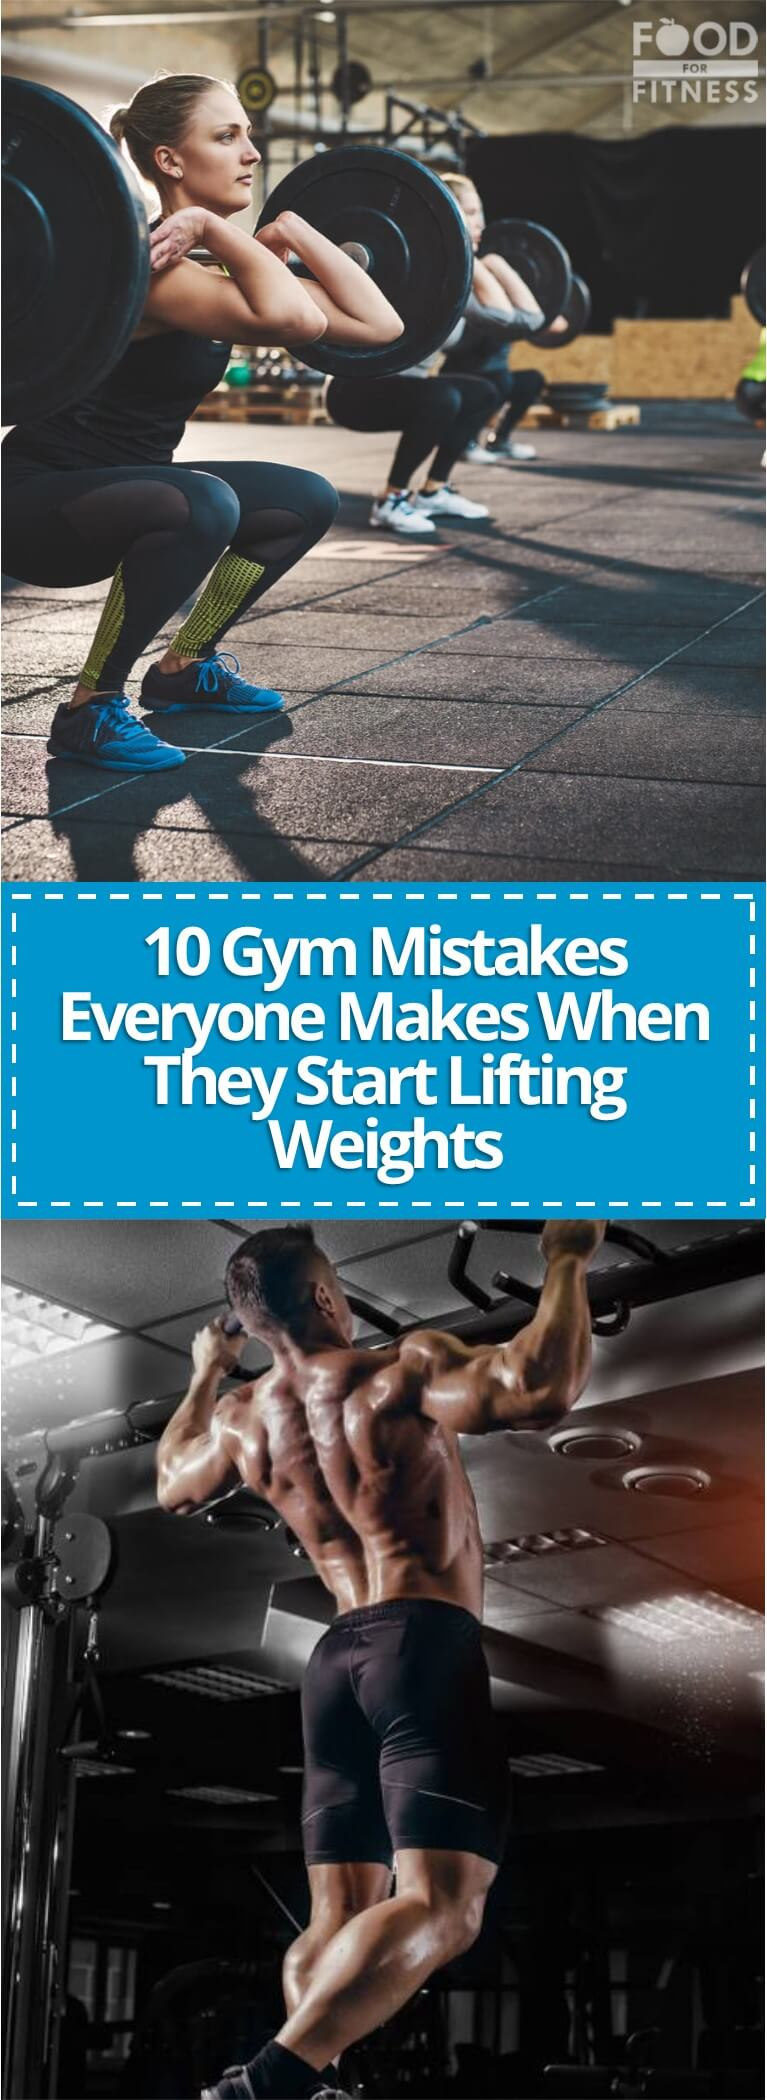 Here are 10 gym mistakes that everyone makes when they start lifting weights.